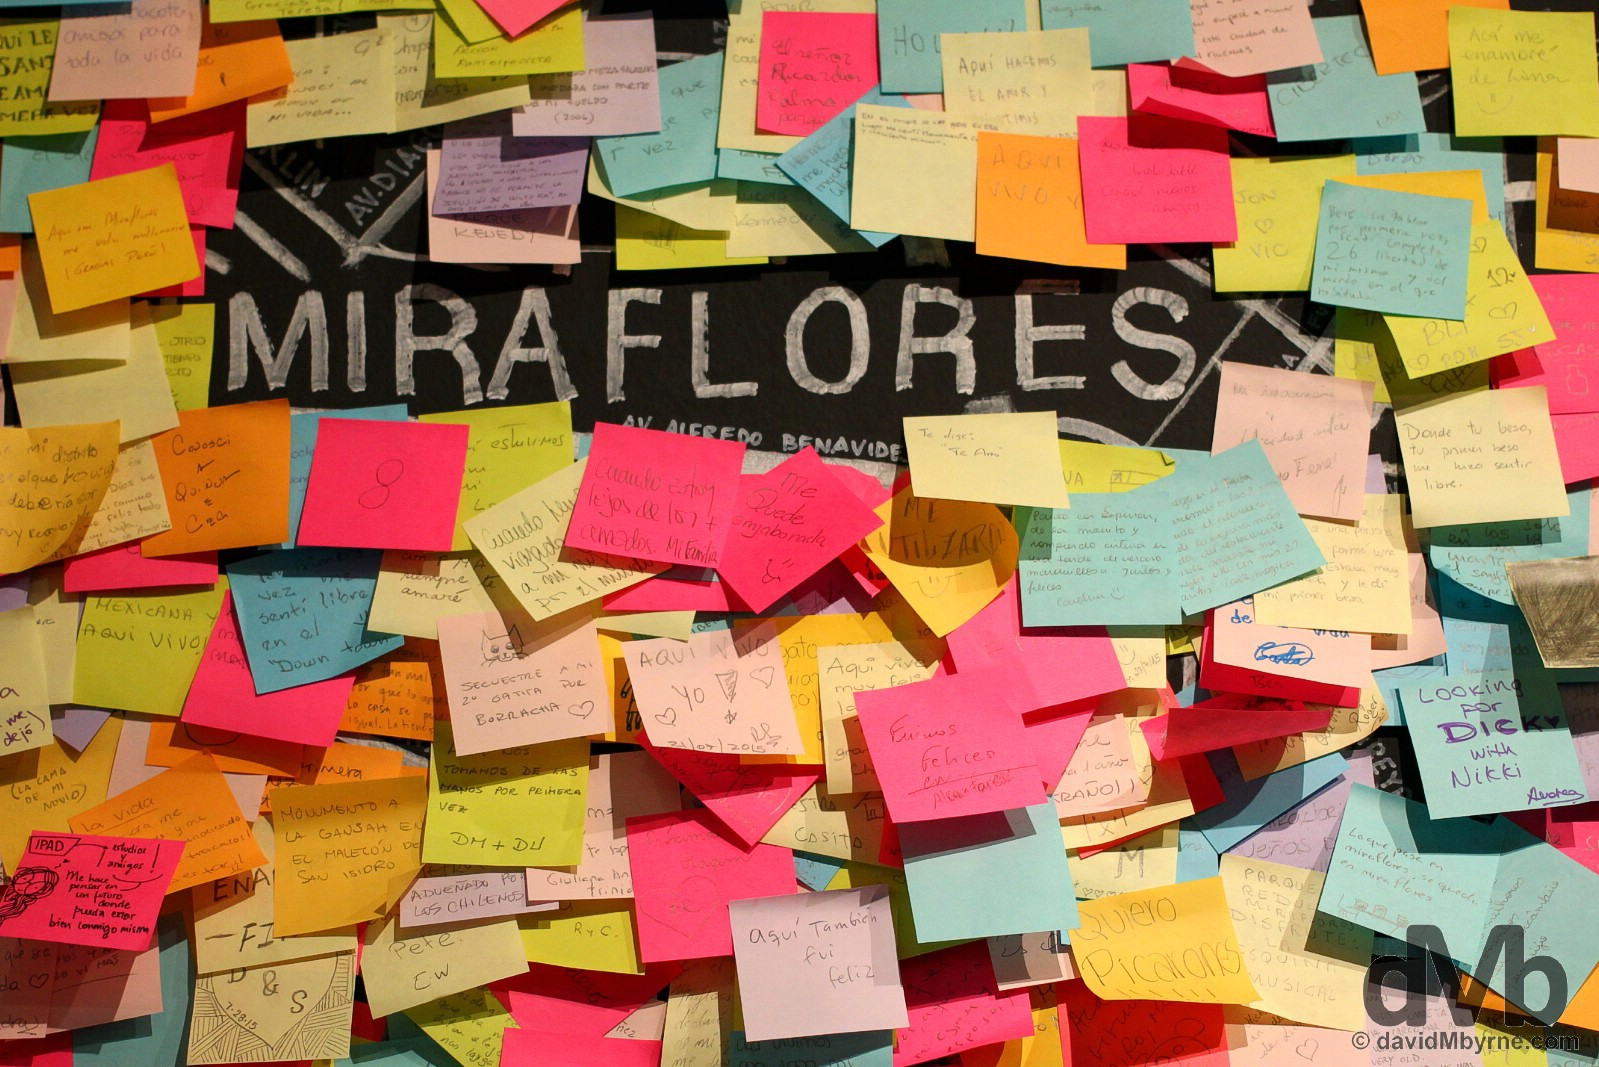 Post-it notes in an exhibition in the Centro Cultural de la Municipalidad de Miaflores, Miraflores, Lima, Peru. August 8, 2015.